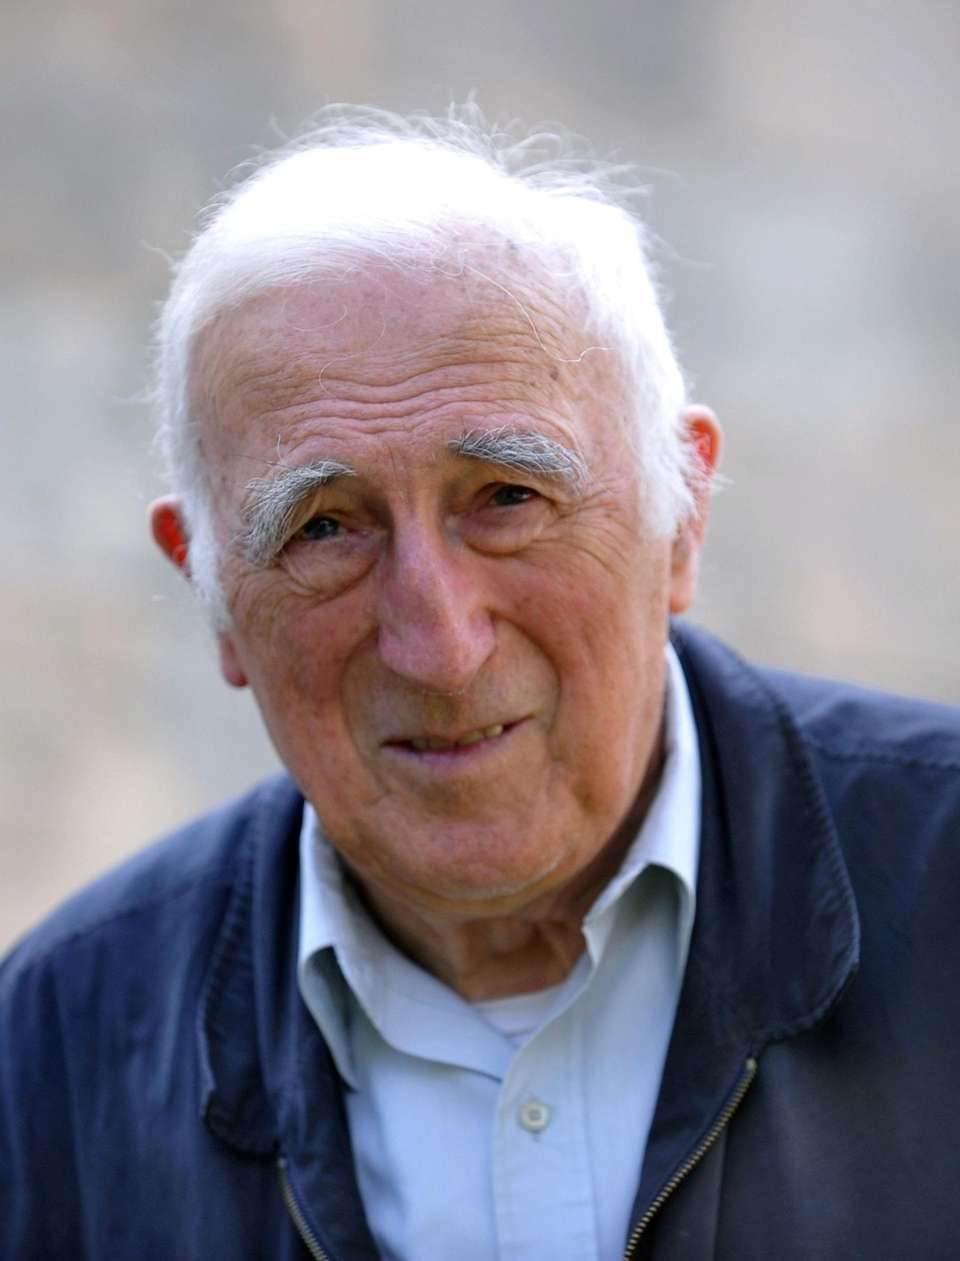 Jean Vanier, a Canadian Catholic whose charity work